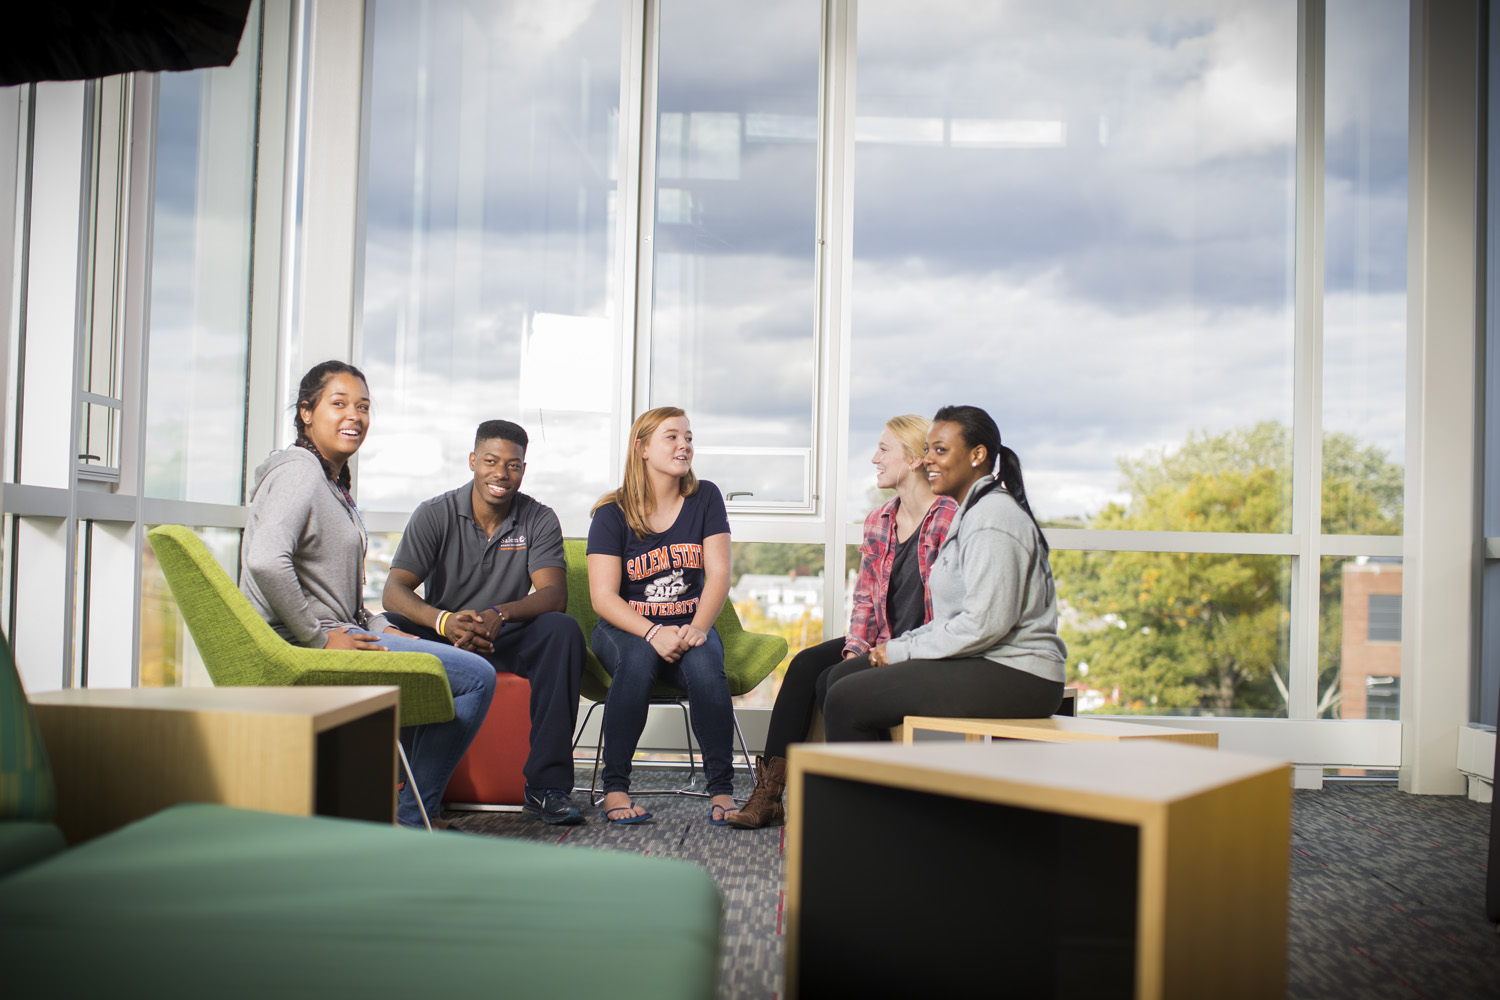 Students gather together in the common area of Viking Hall.